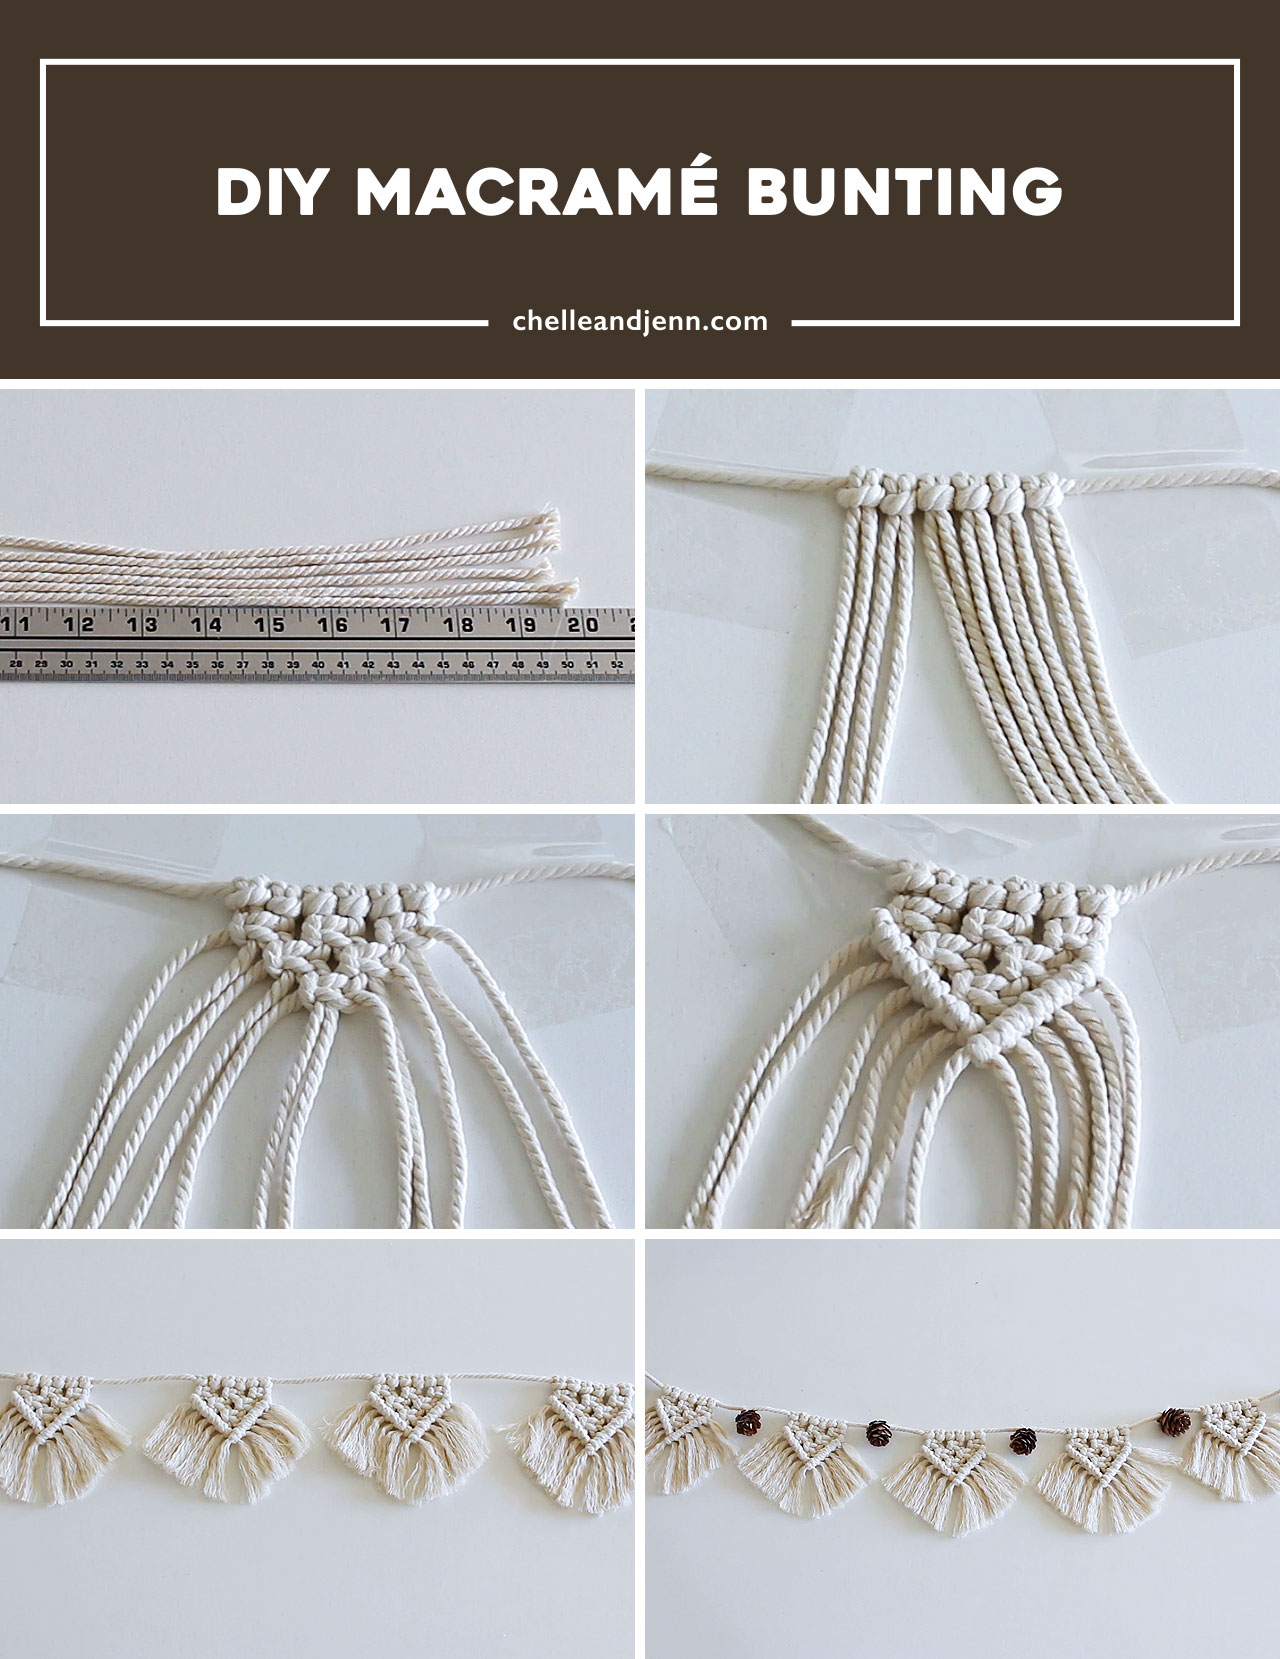 Day 1 Macrame Bunting Chelle And Jenn